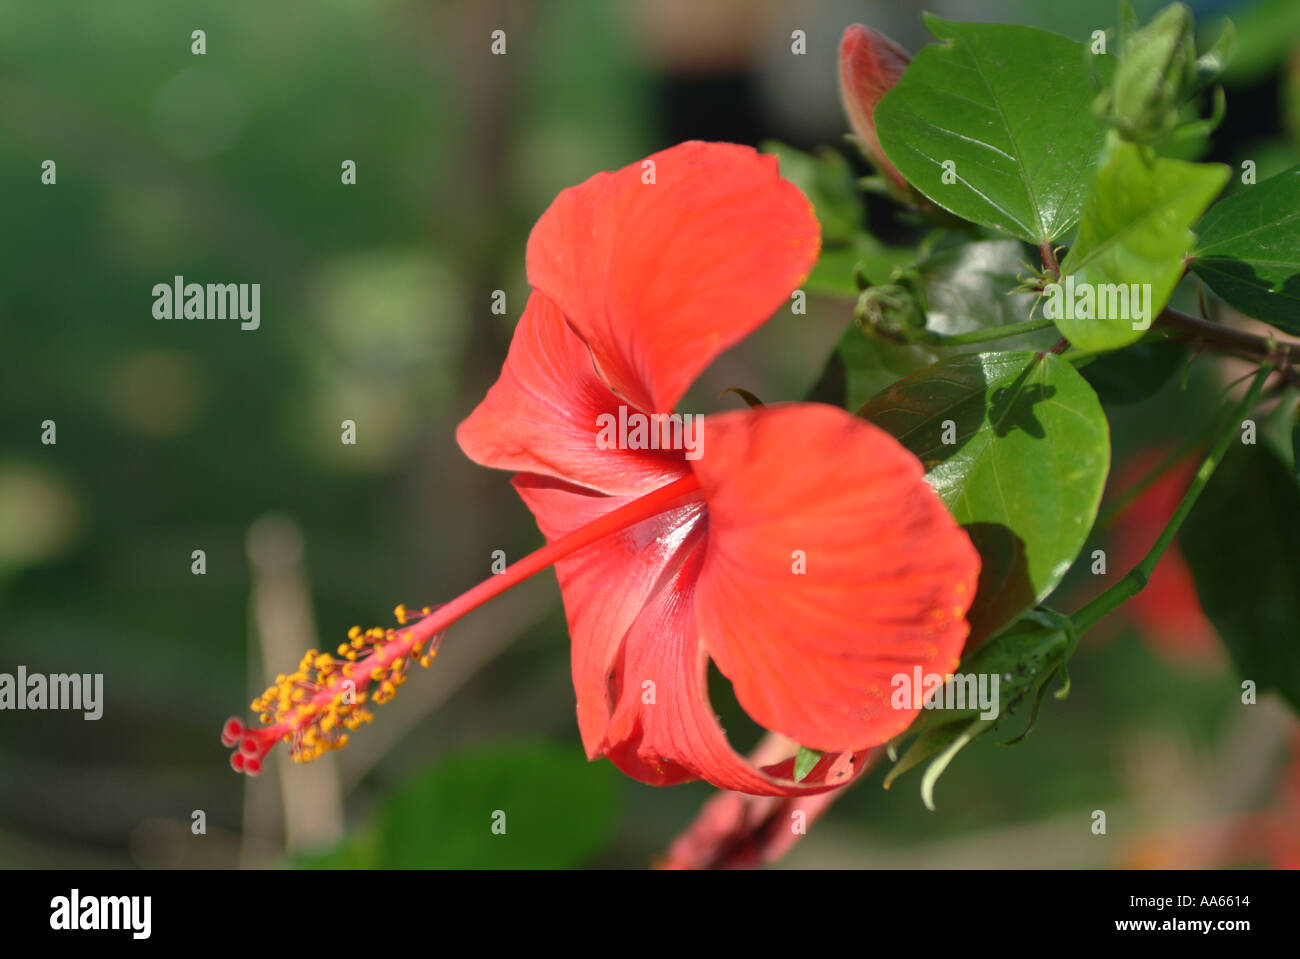 Hardy yellow hibiscus stock photos hardy yellow hibiscus stock red hibiscus flower in full bloom near spanish border in portugal stock image izmirmasajfo